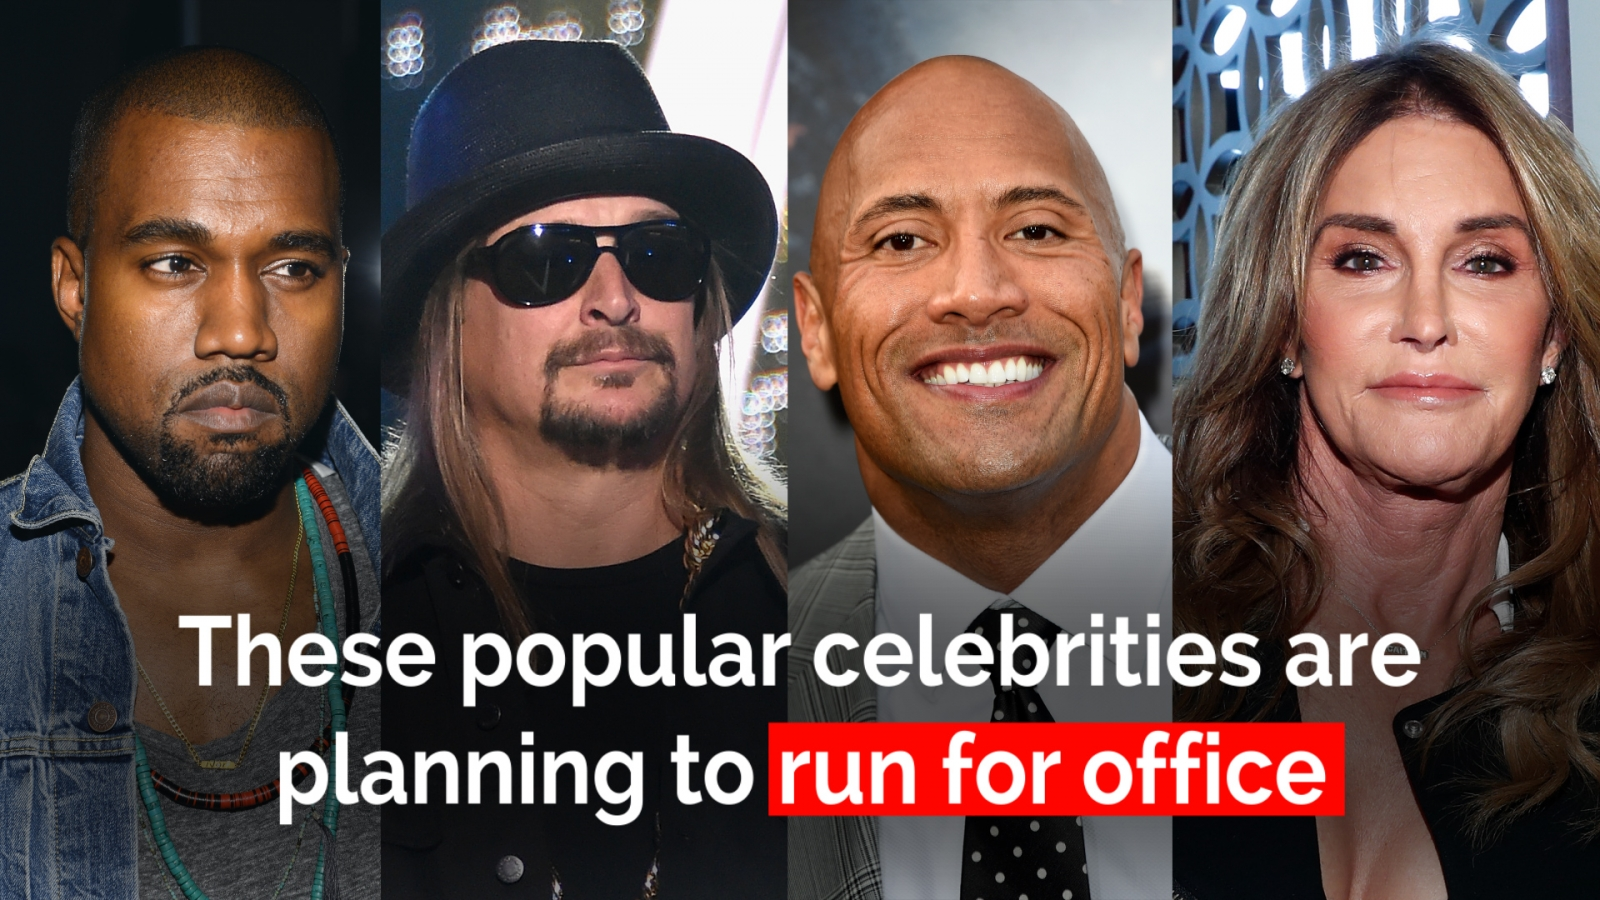 These celebrities might run for US office